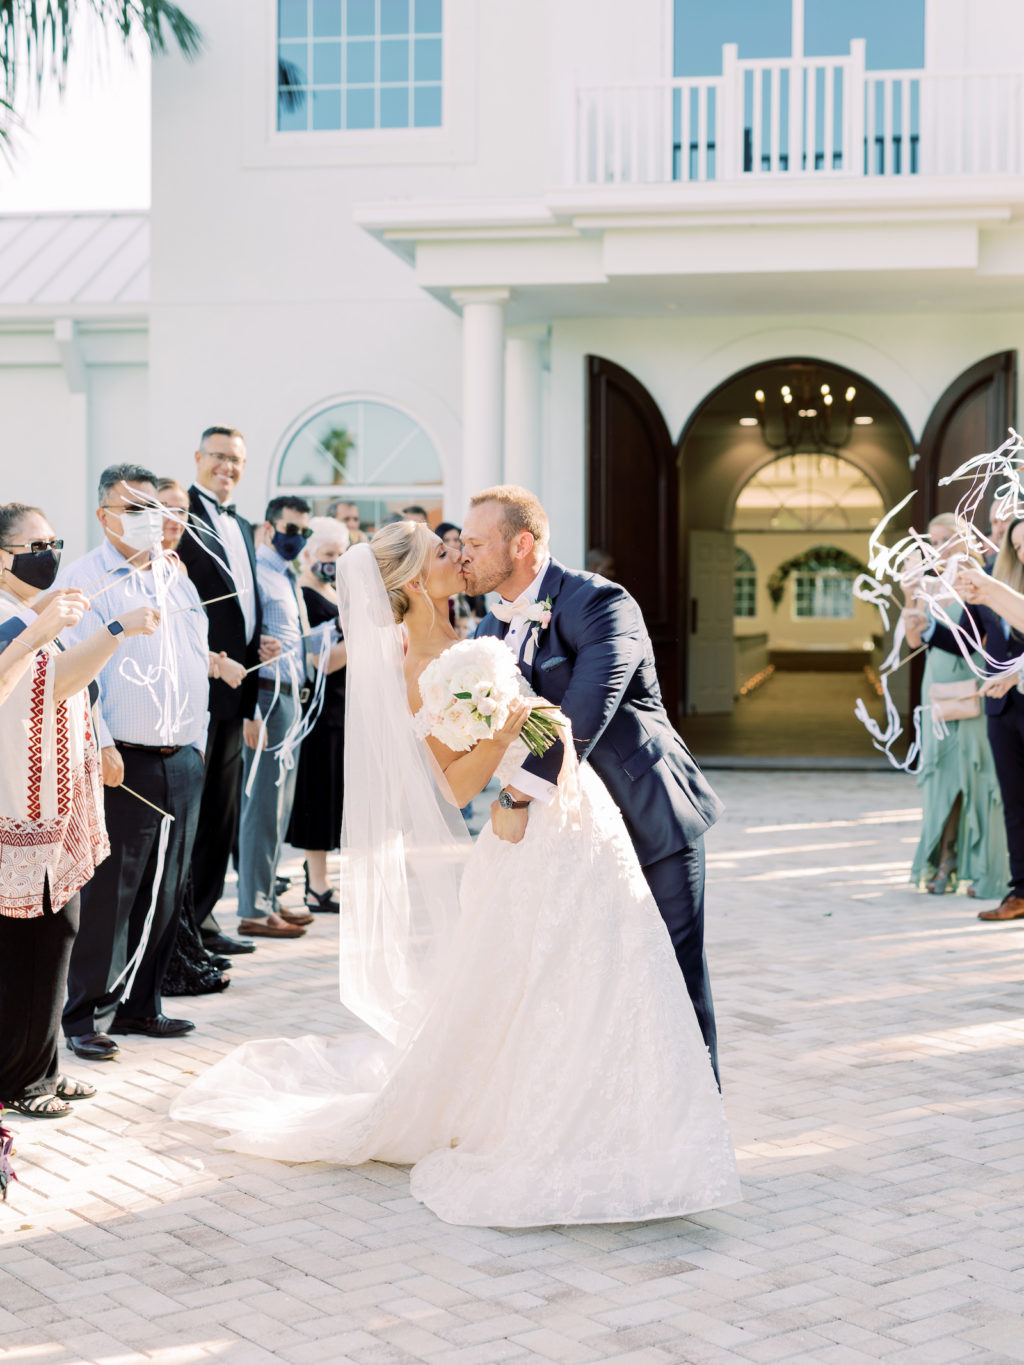 Romantic Timeless Bride and Groom Kiss During Exit from Wedding Ceremony | Safety Harbor Traditional Wedding Venue Harborside Chapel